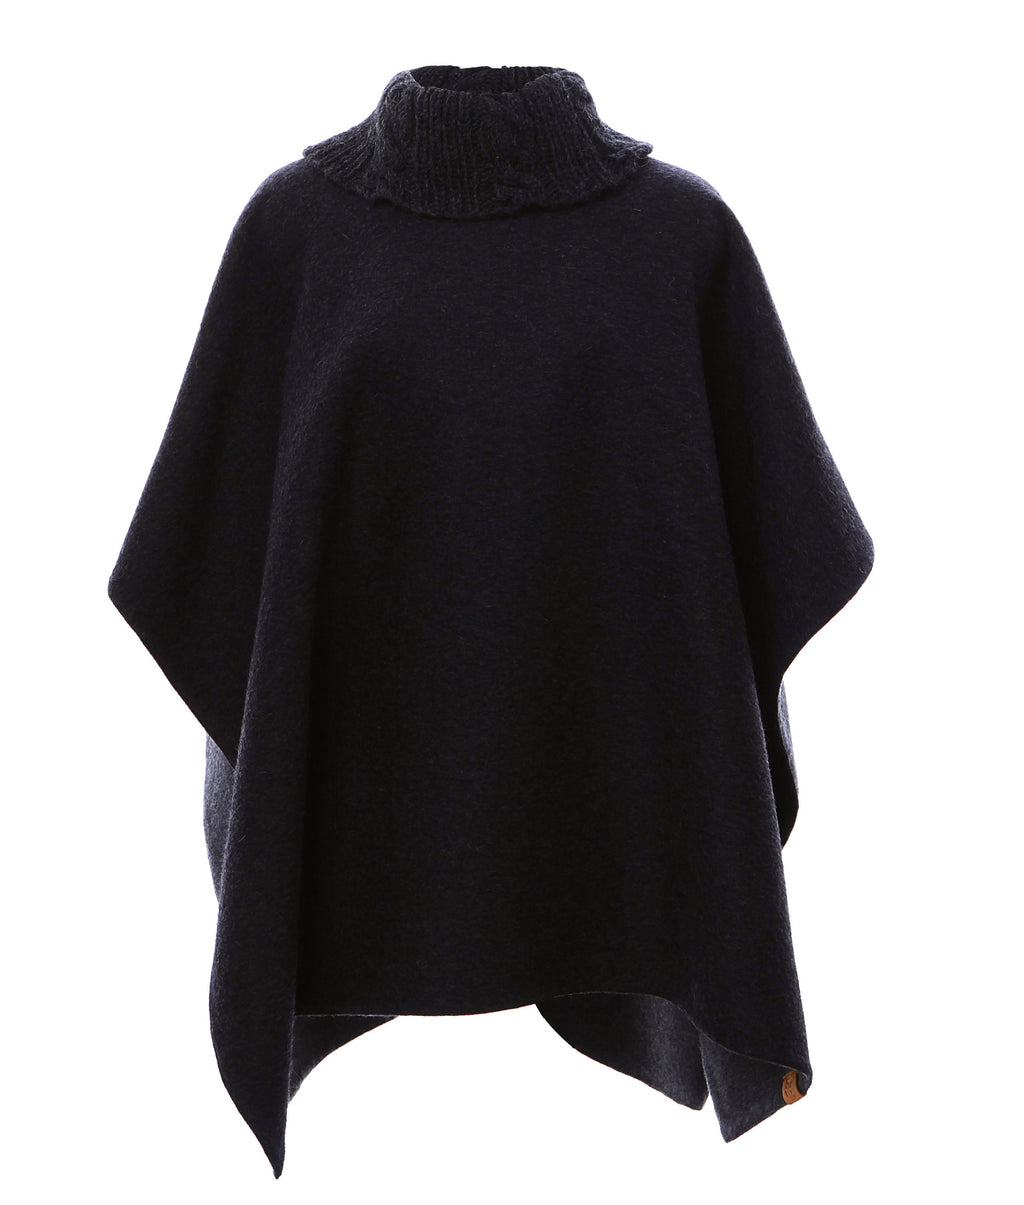 Knit Collar Poncho<br>Charcoal & Heather